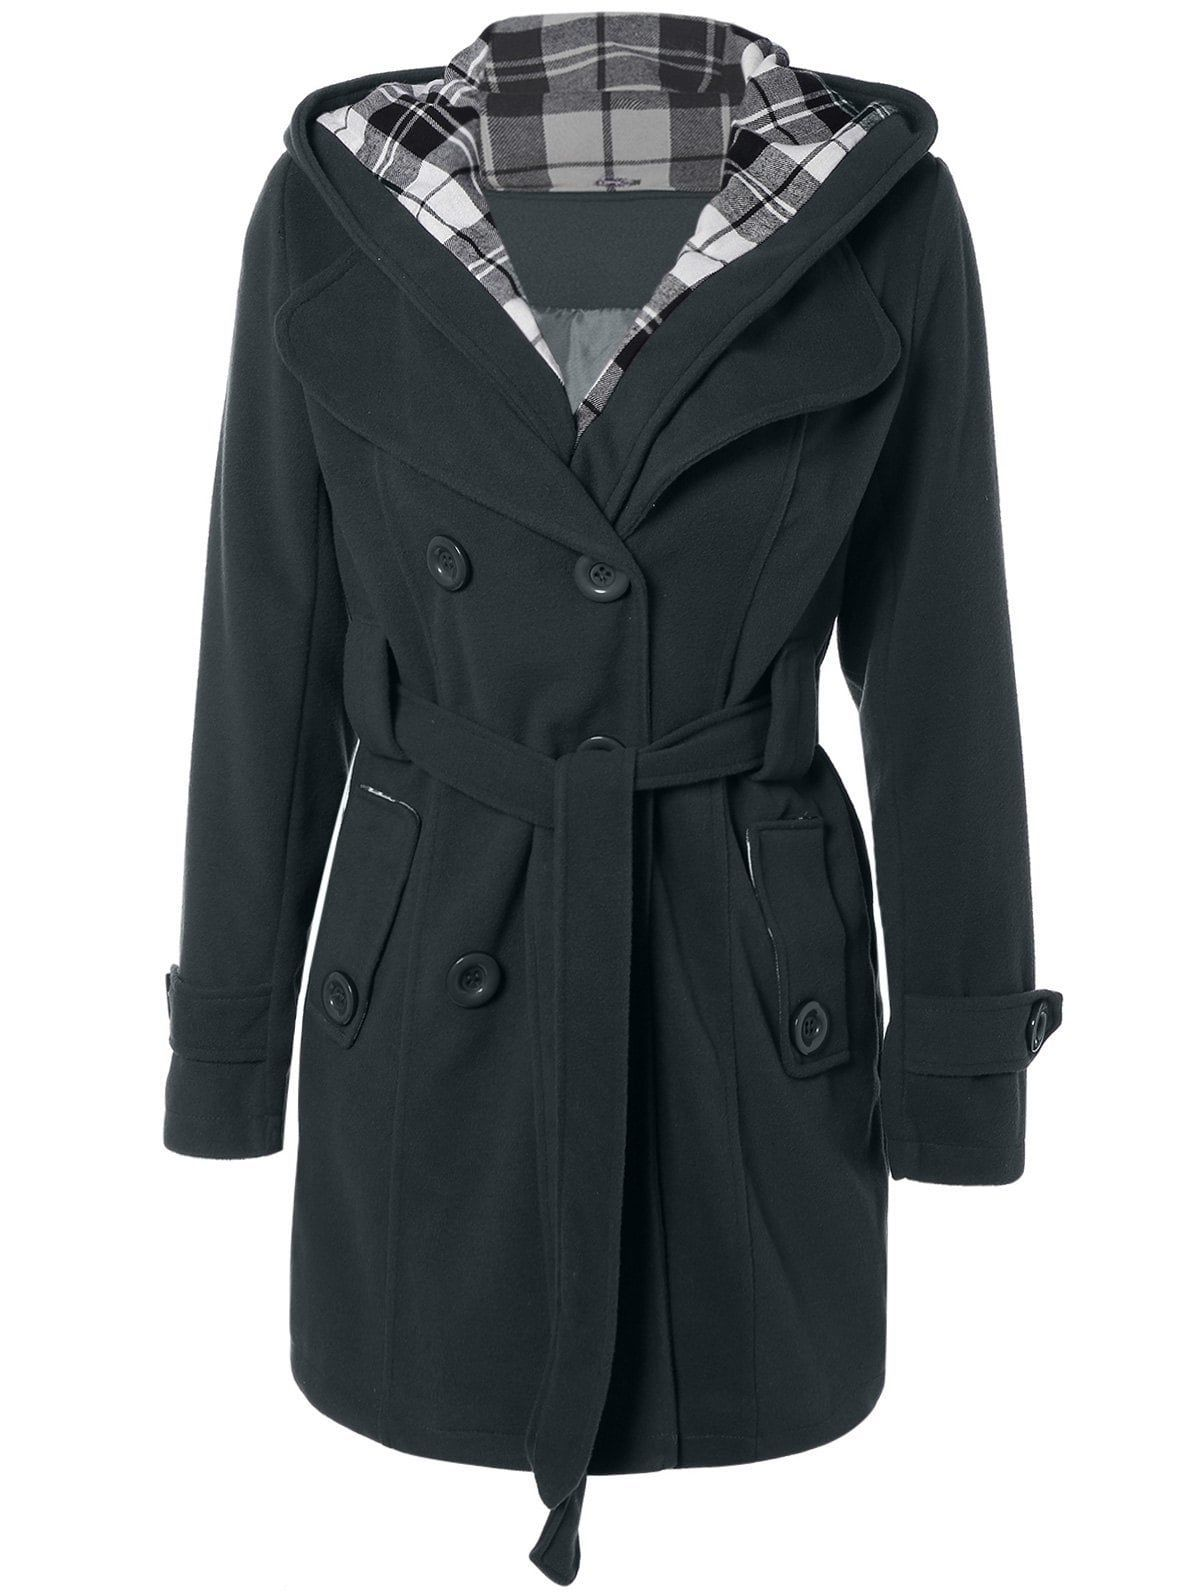 Grey Dress 2xl Wool Coat Black Hooded Blend Belted BxU0wqqX